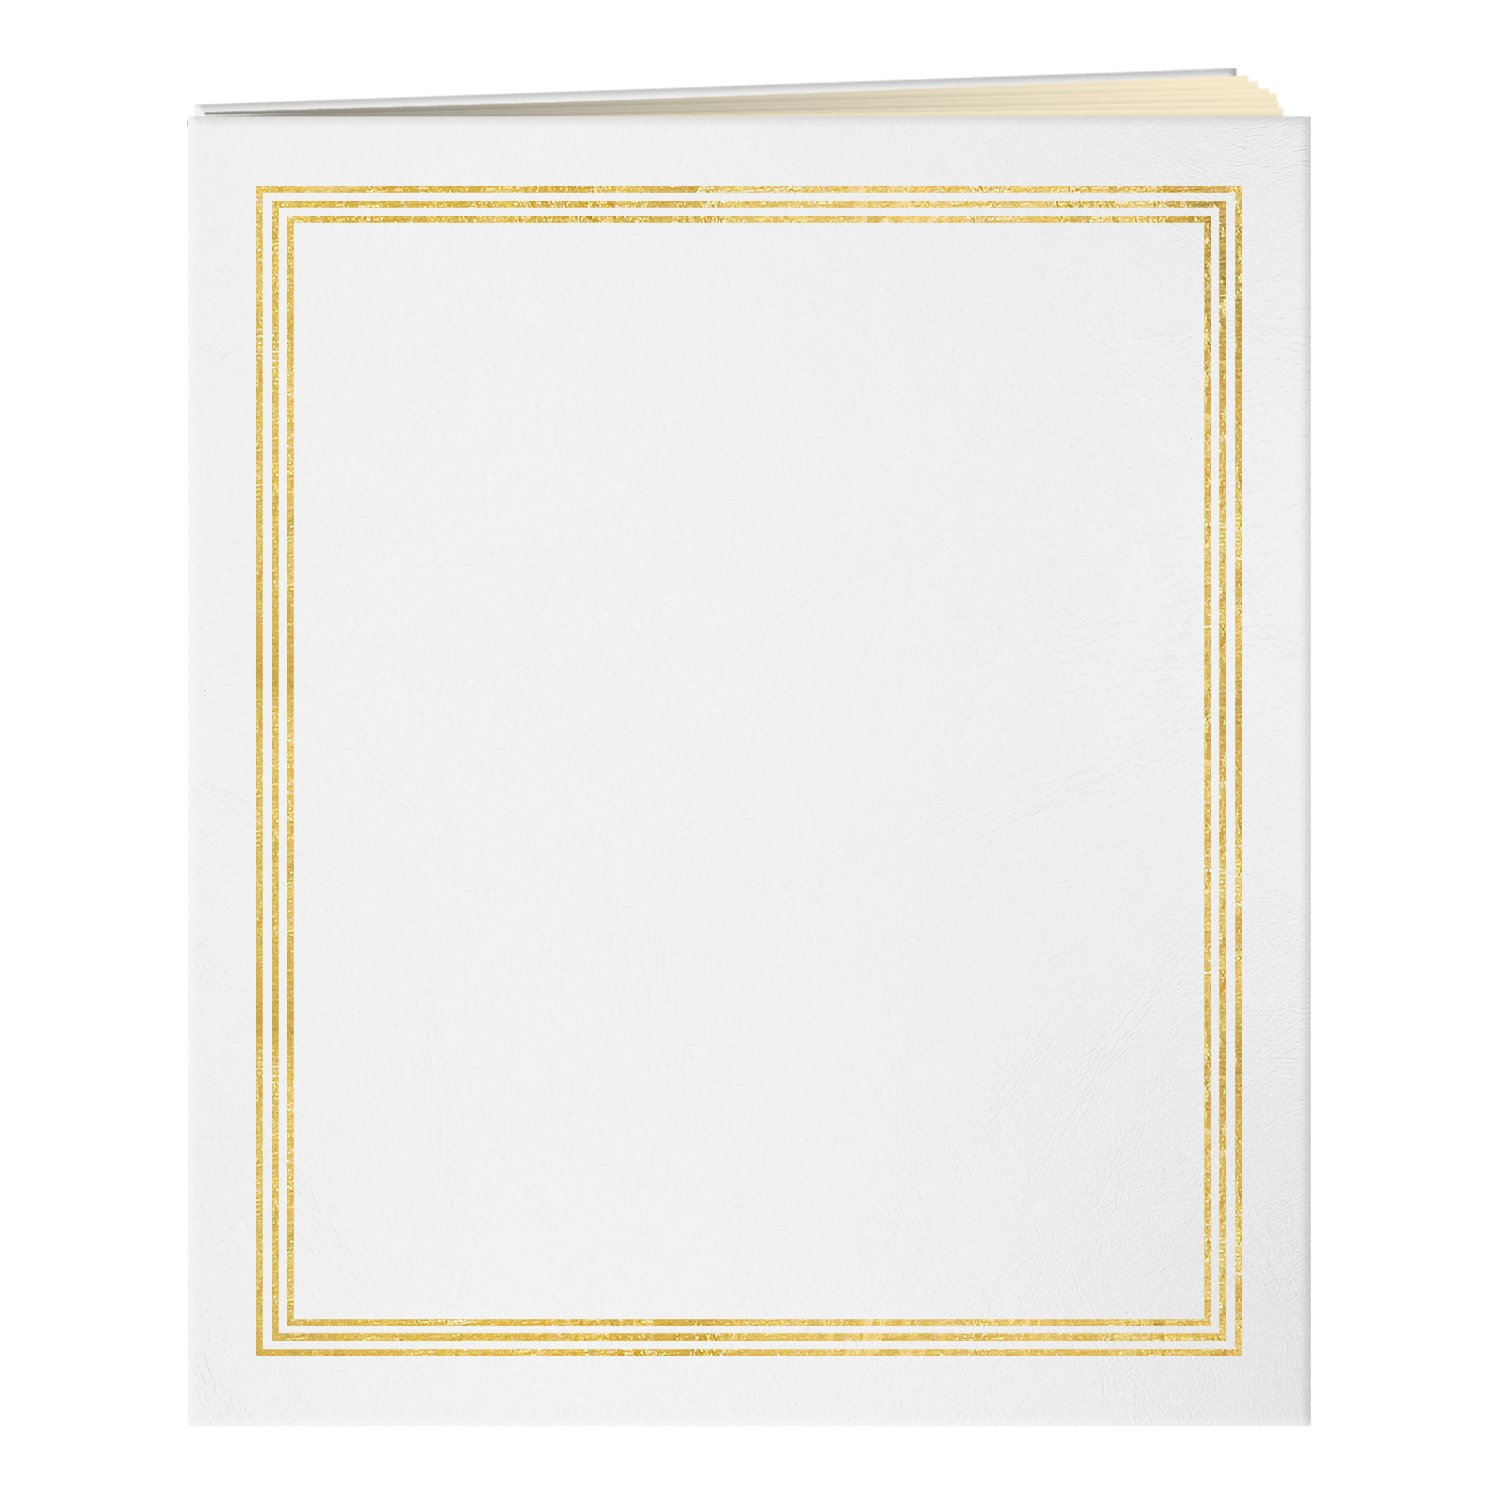 Pioneer Jumbo 11.75x14 Beige Page Scrapbook 100 Pages (50 Sheets), White